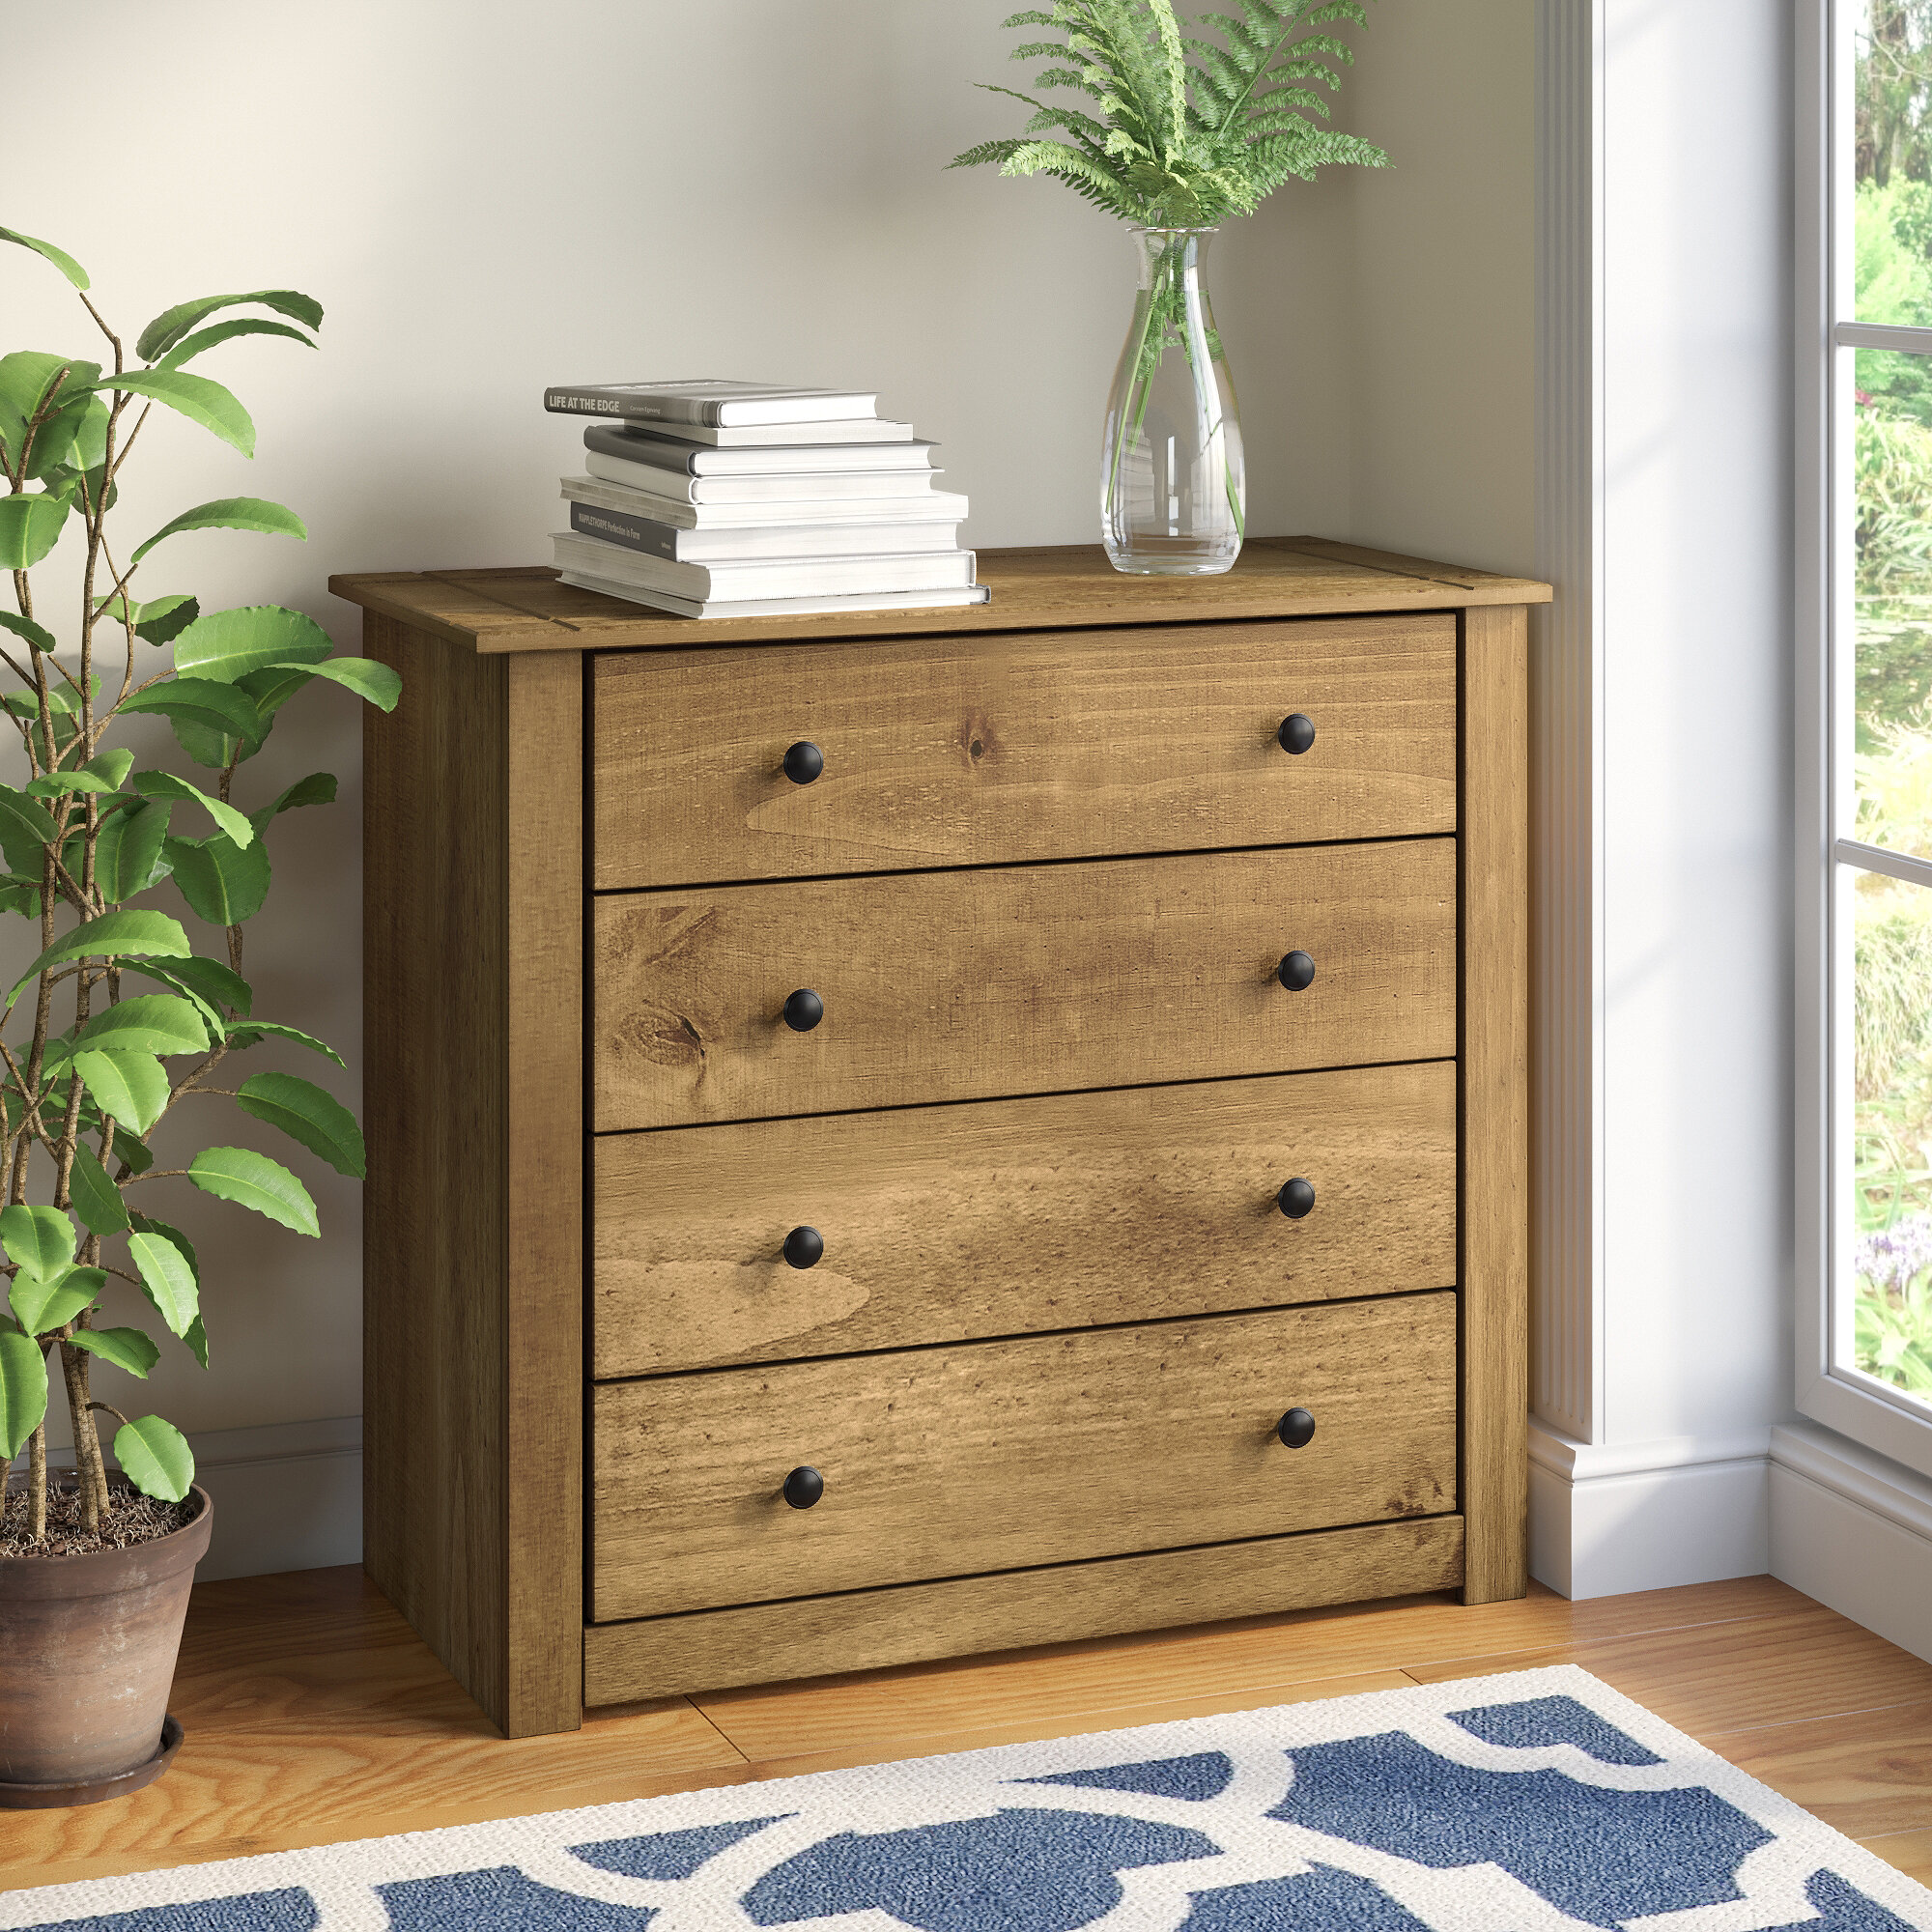 uk stores bianco is of effect chest at four this available drawers it oak drawer